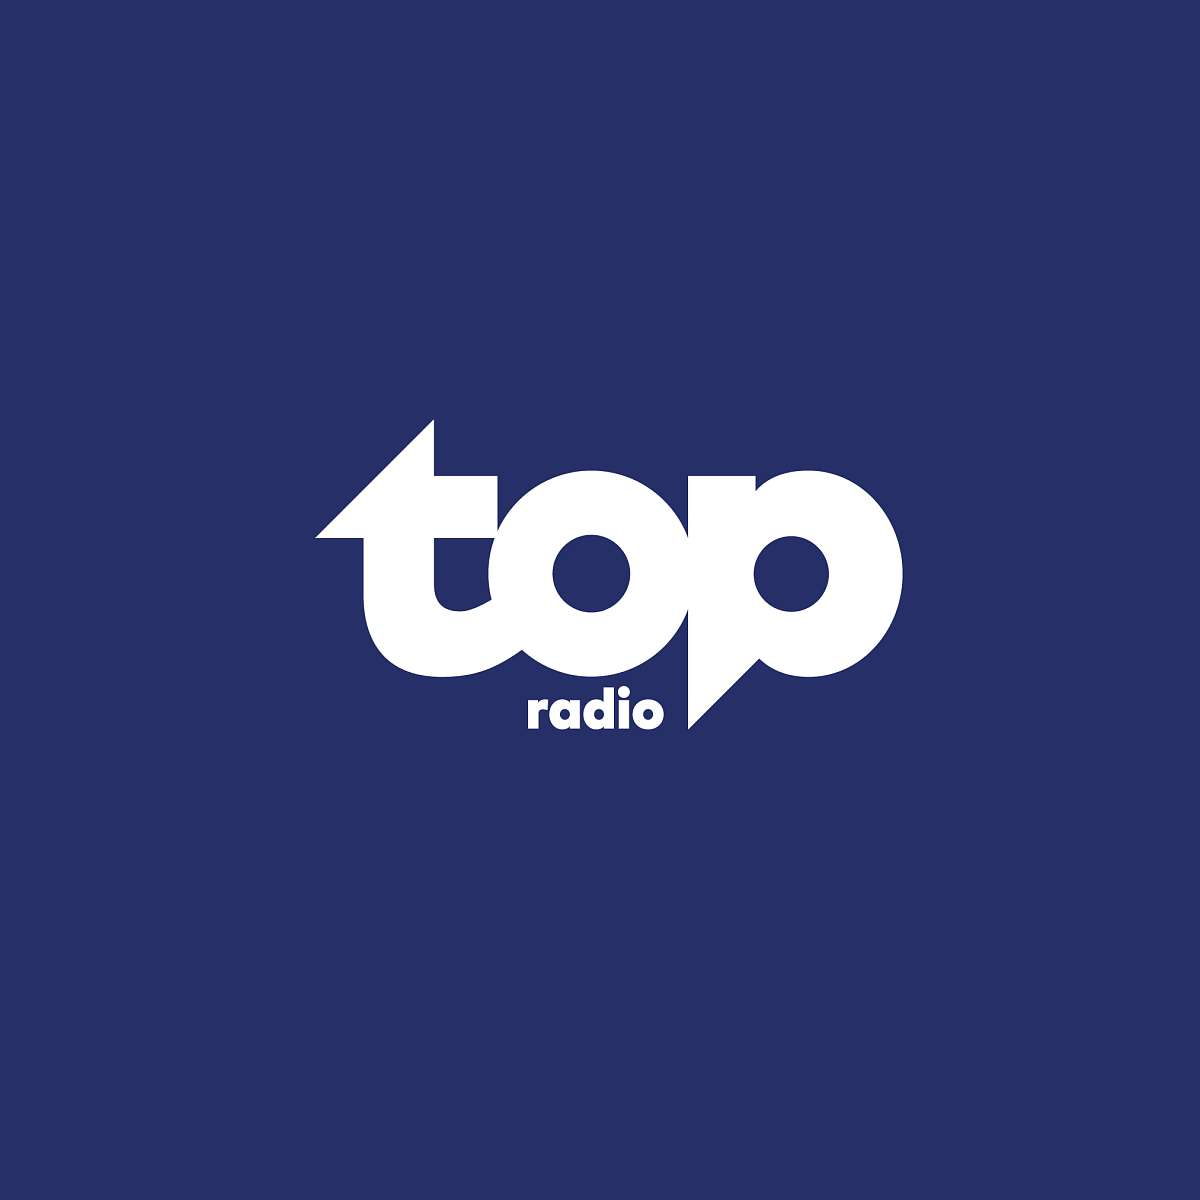 Top Radio rebrand